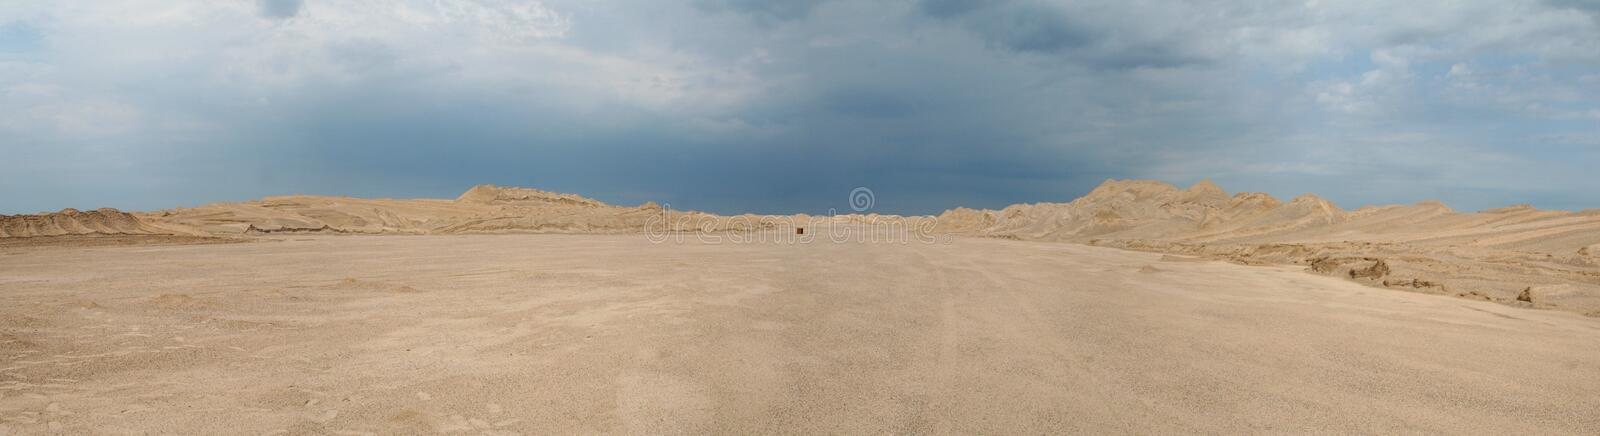 In the middle of the desert royalty free stock photo